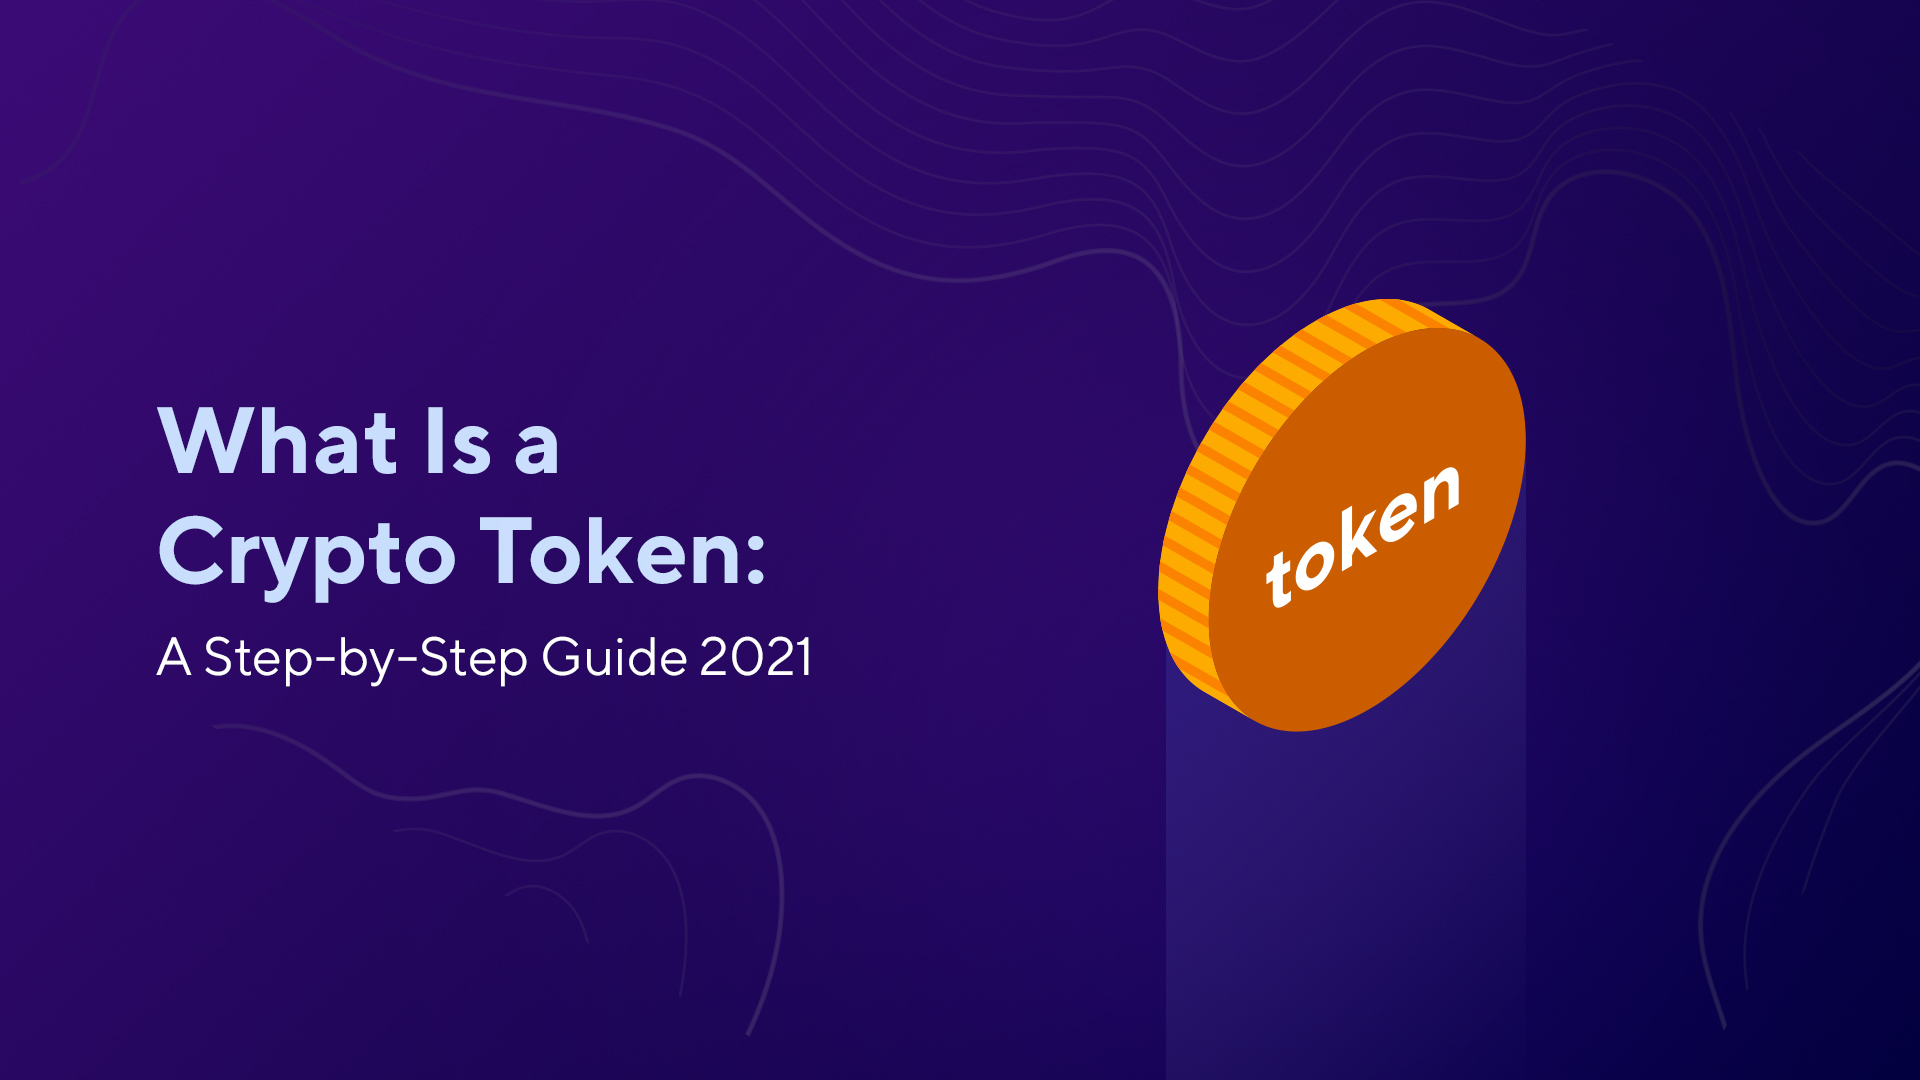 What Is a Crypto Token: A Step-by-Step Guide 2021